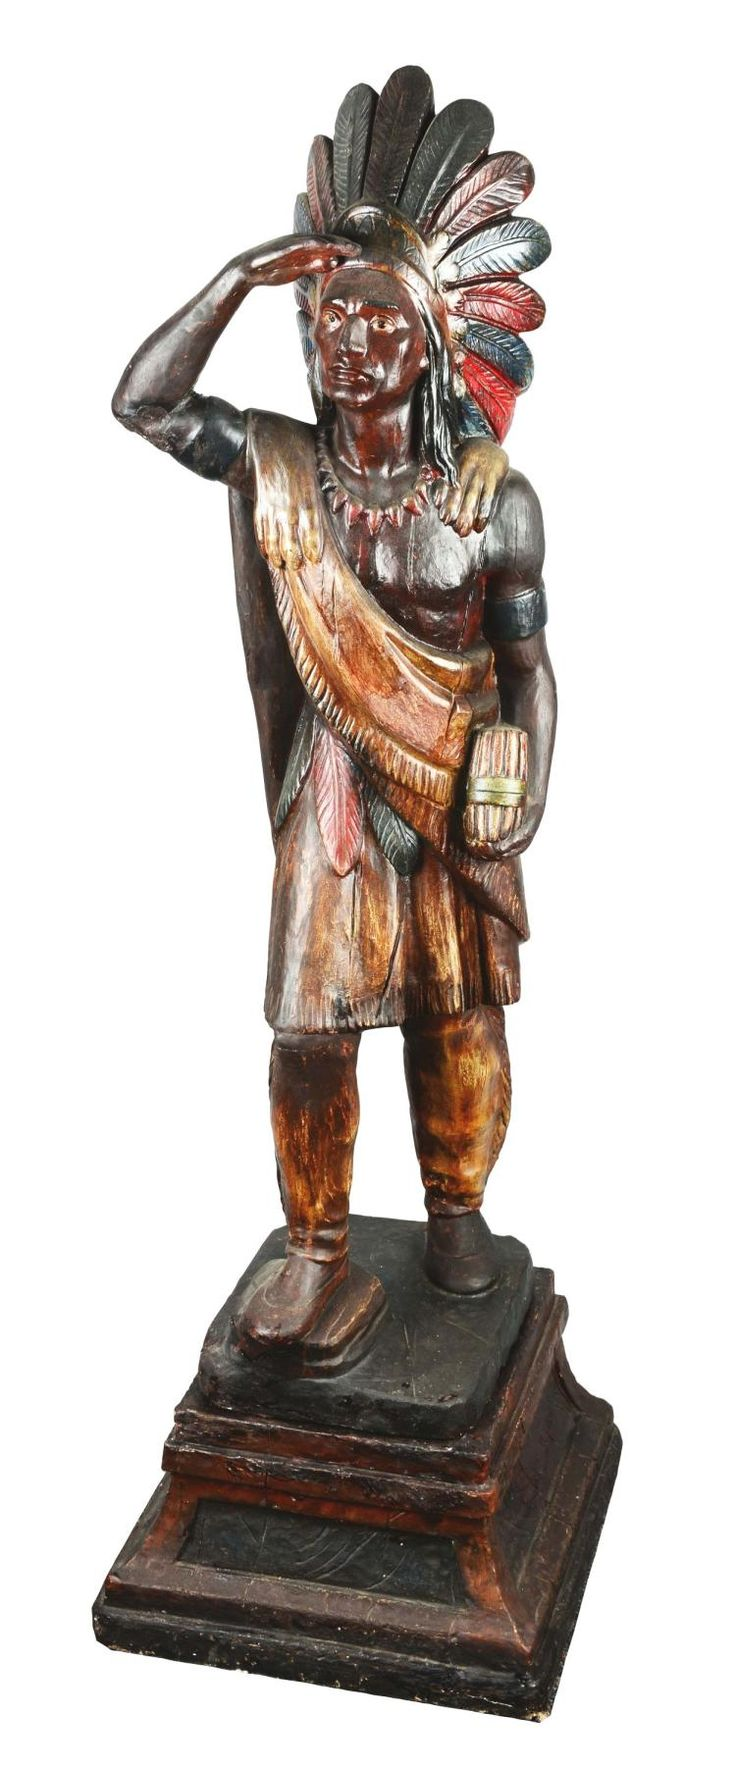 Buy online, view images and see past prices for RARE CARVED AND PAINTED PINE SMALL 'CIGAR STORE INDIAN', PROBABLY SAMUEL ROBB (1851-1928), NEW YORK, CIRCA 1880 |. Invaluable is the world's largest marketplace for art, antiques, and collectibles.